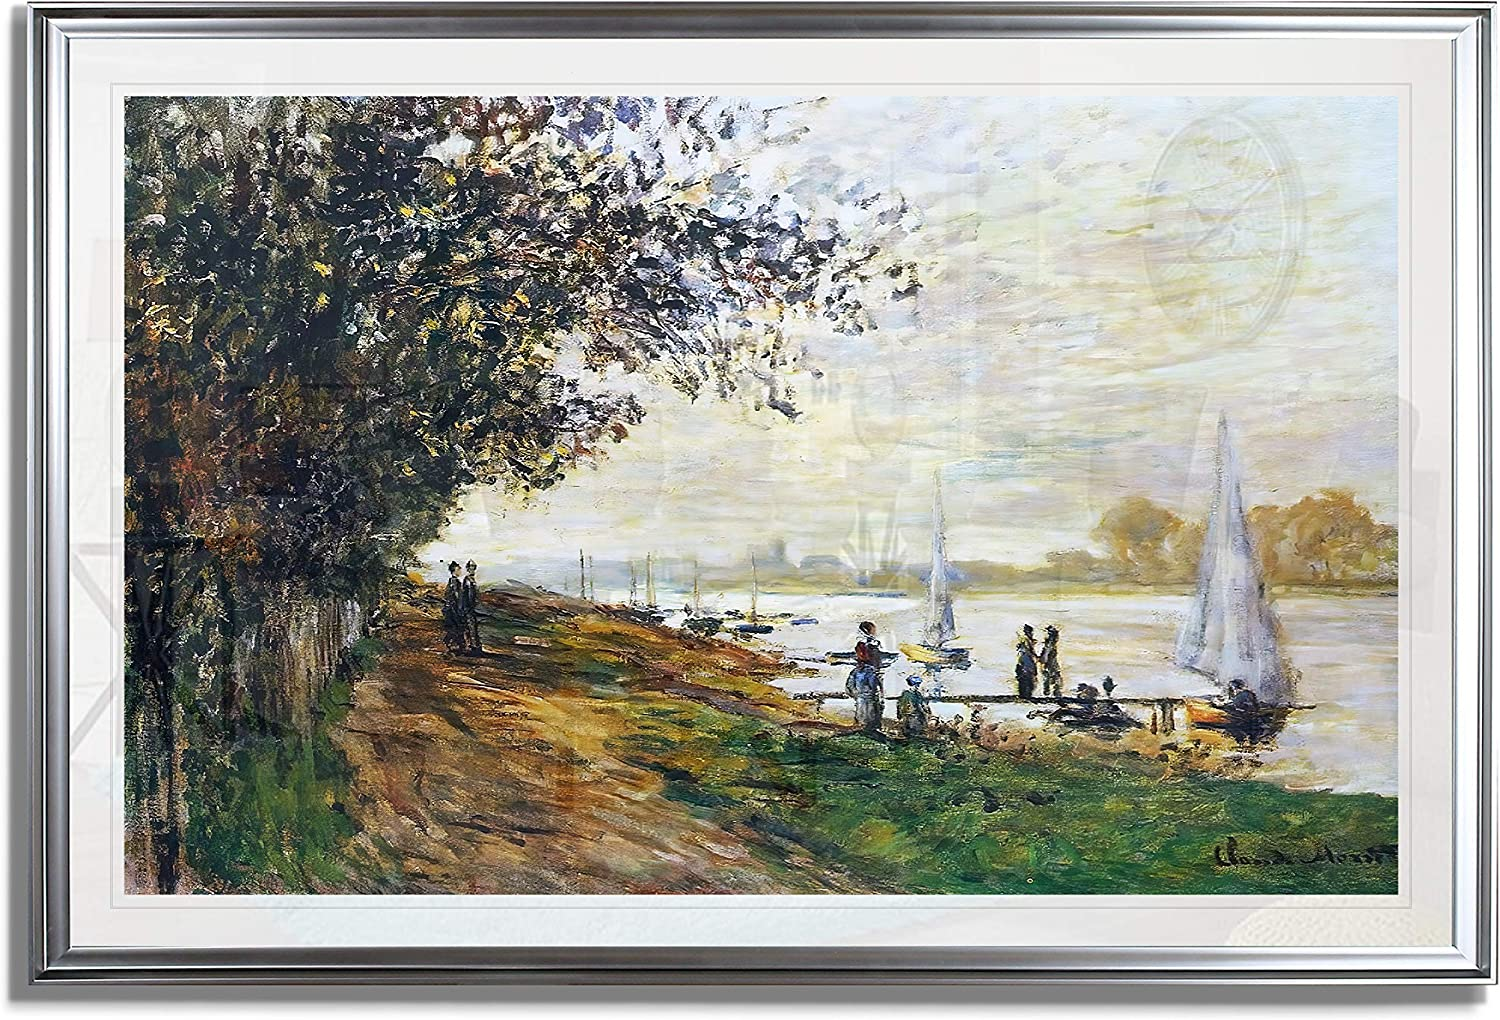 Monet Wall Art Collection The The Riverbank at Le Petit-Gennevilliers, Sunset, 1875 Fine Giclee Prints Wall Art in Premium Quality Framed Ready to Hang 24X34, Silver